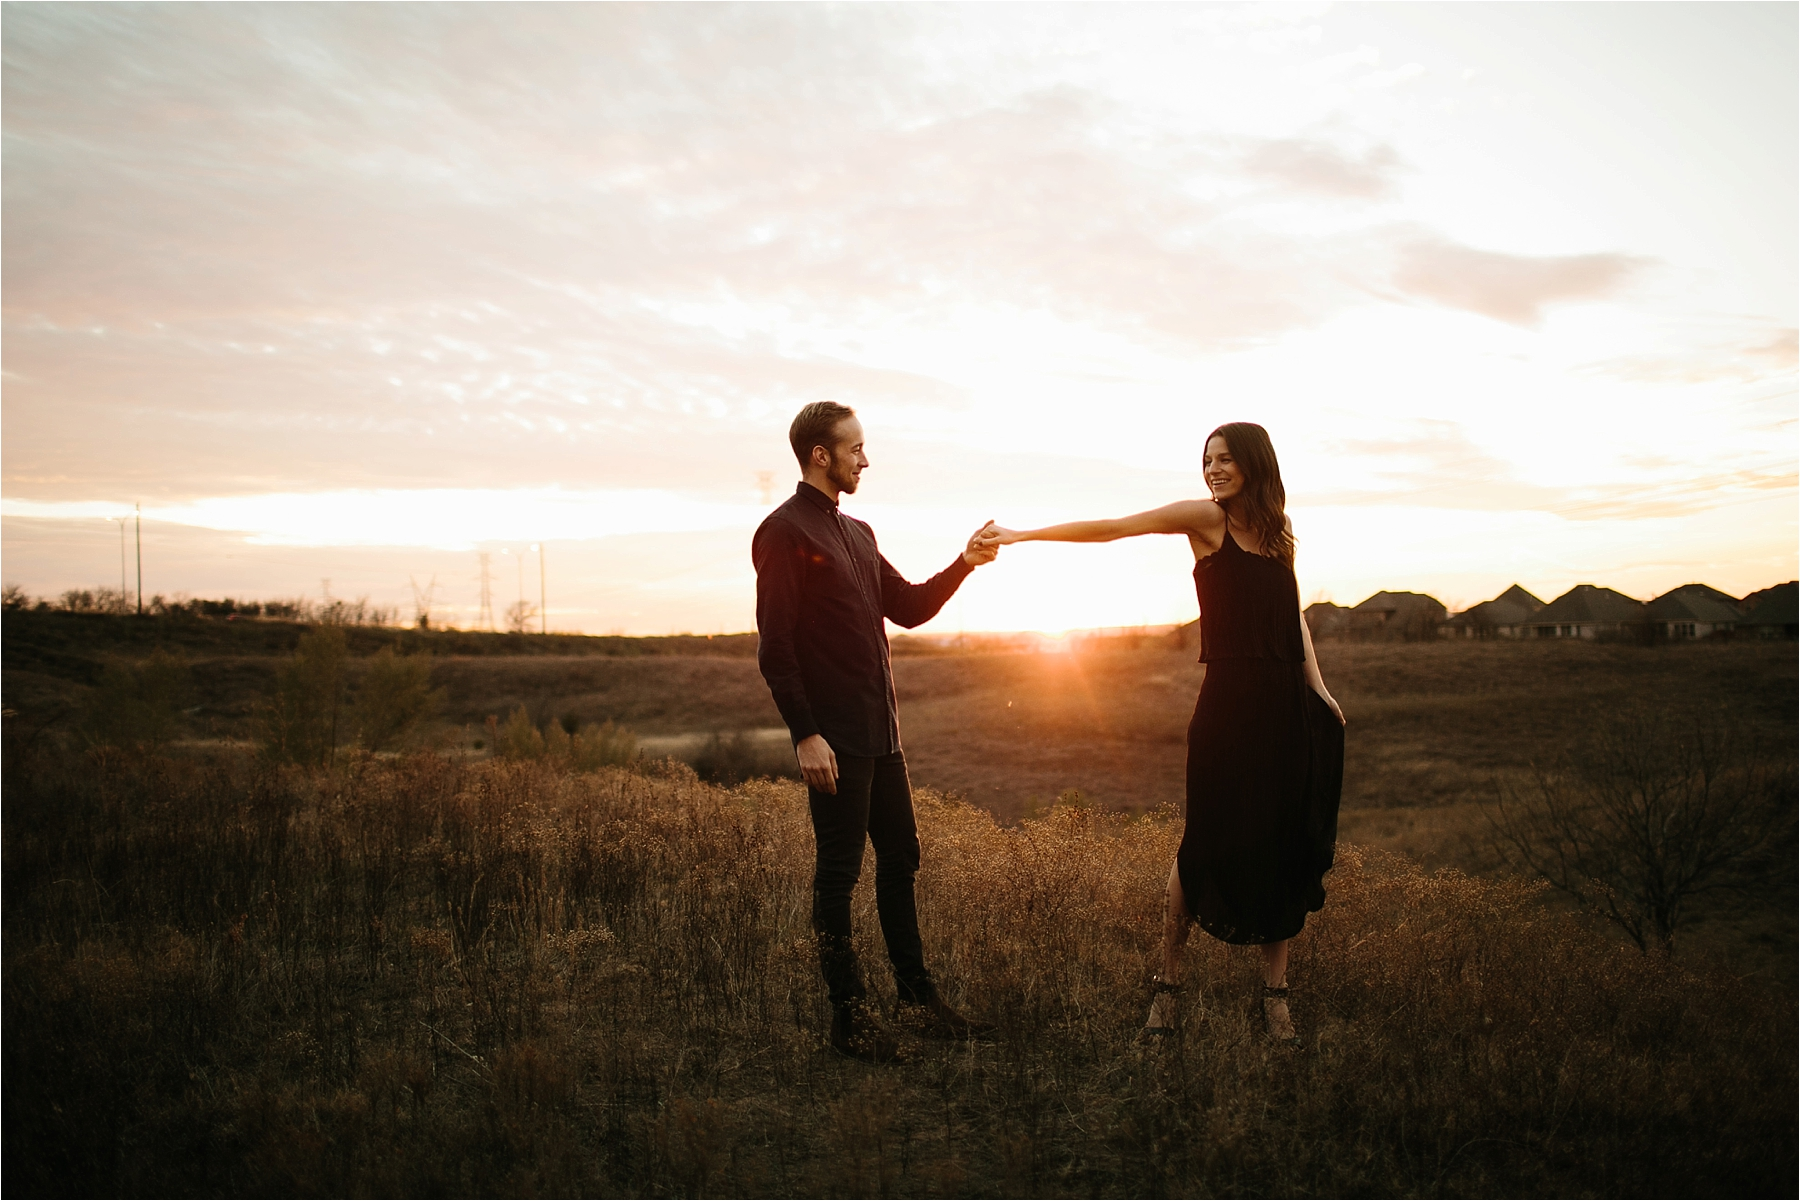 Trey + Phoebe __ a playful, intimate engagement session with dark_neutral outfit inspiration by North Texas Wedding Photographer Rachel Meagan Photography __ 51